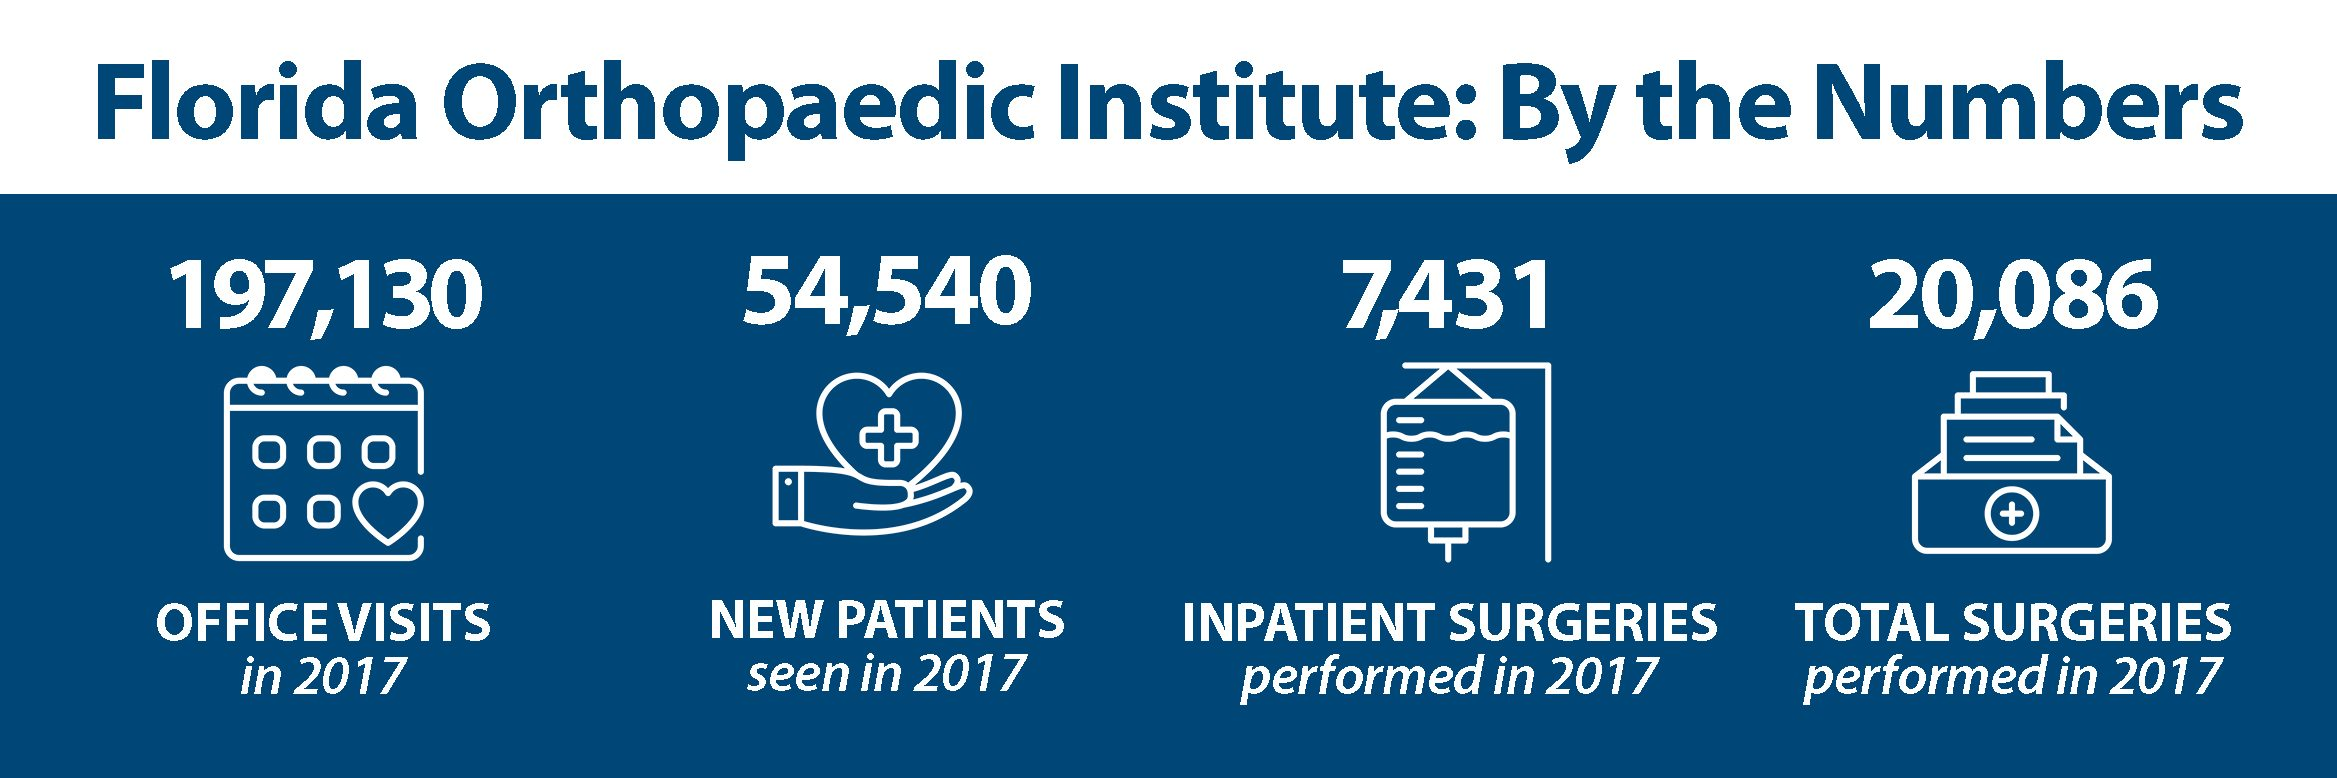 About Florida Orthopaedic Institute By the Numbers